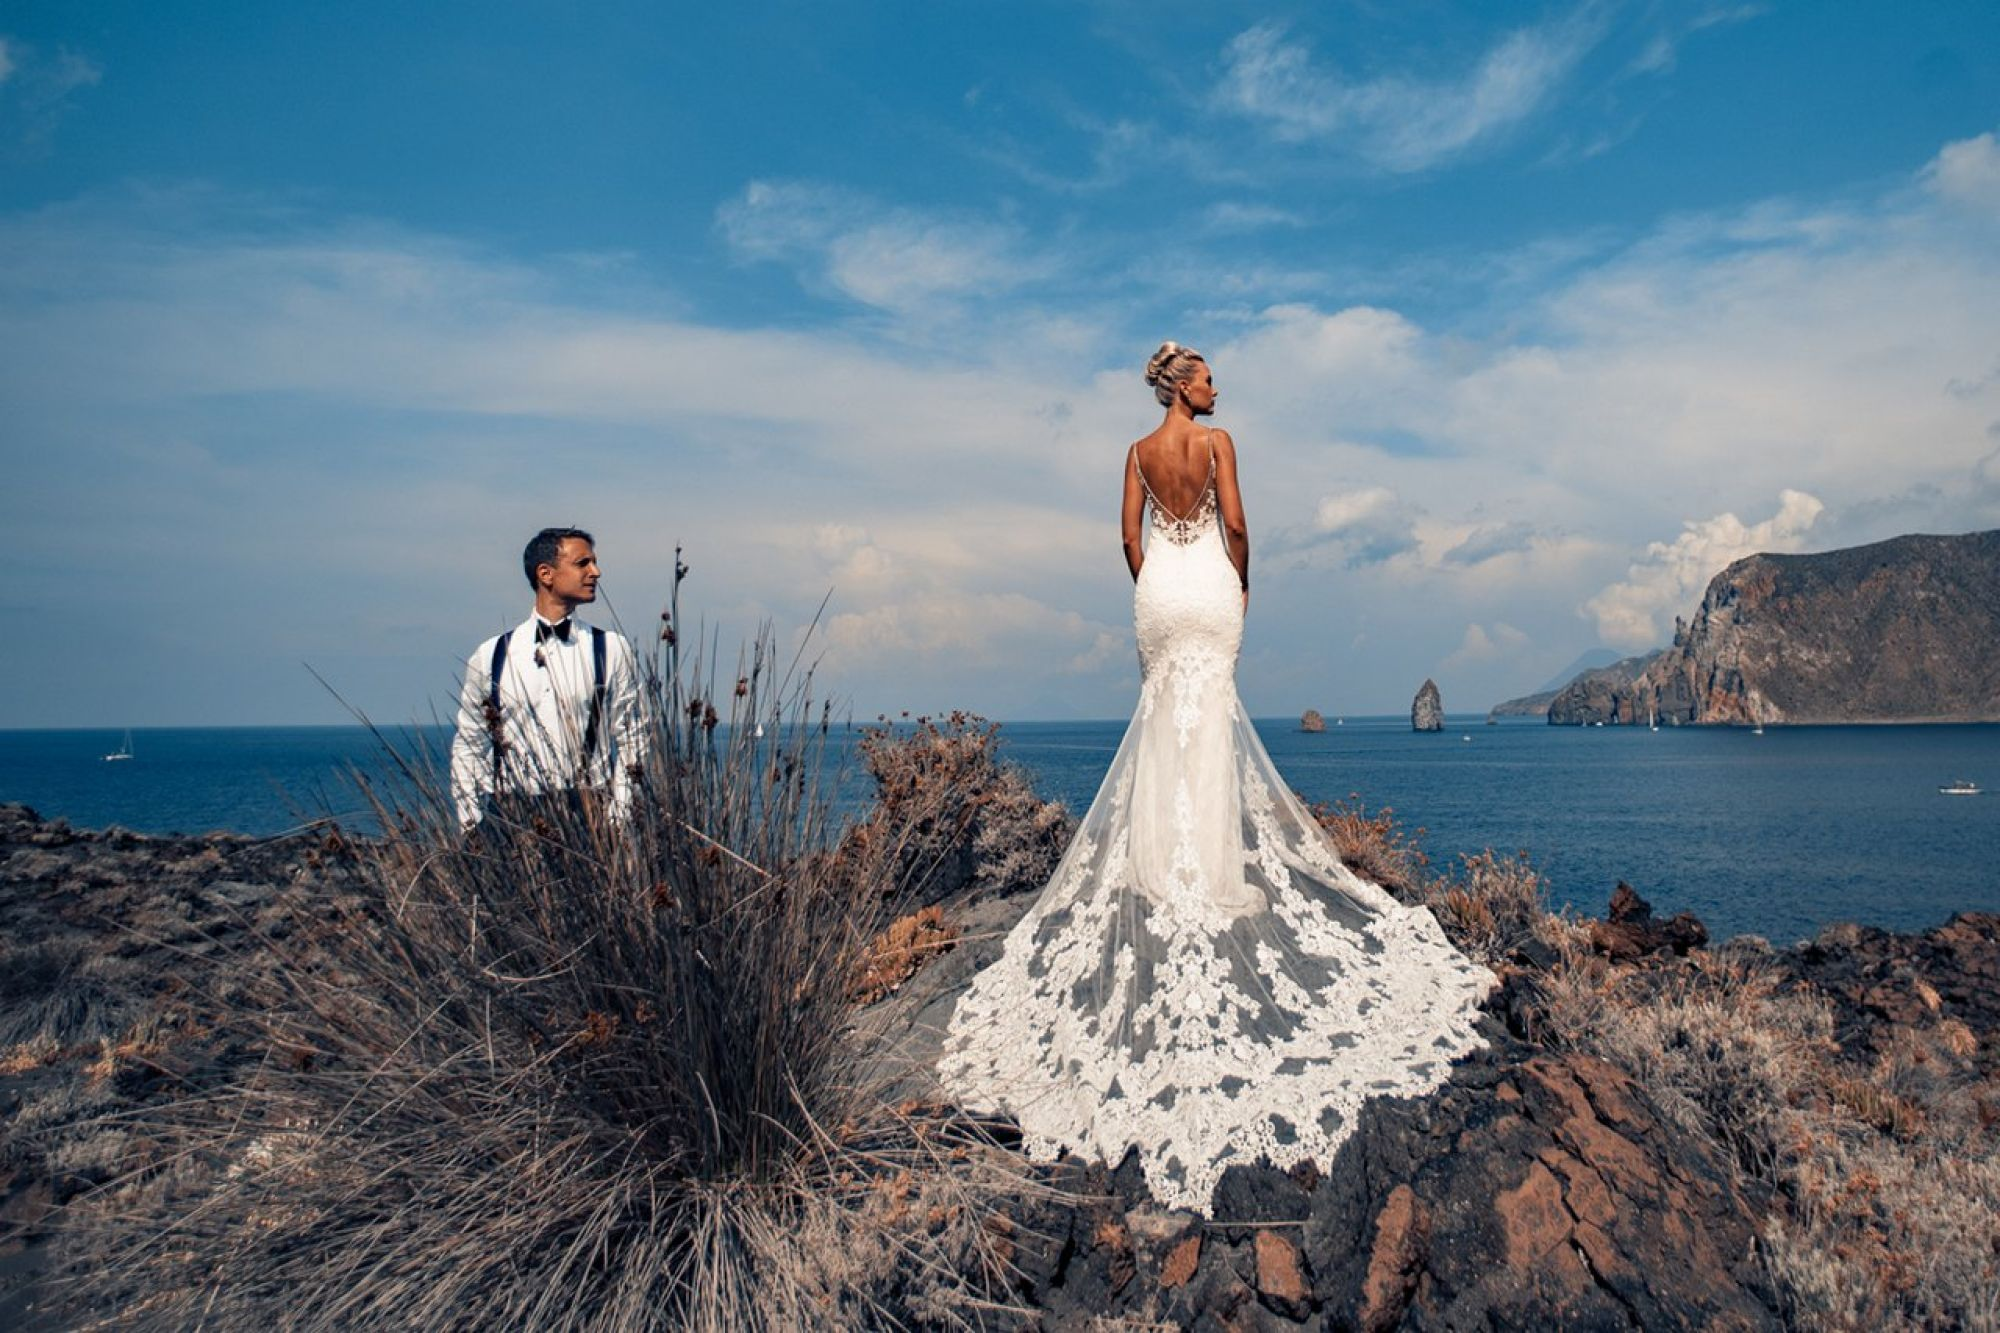 Click to enlarge image matrimonio-nikki-giuseppe-chiello-masterphotographer-sicily-wedding 39.jpg